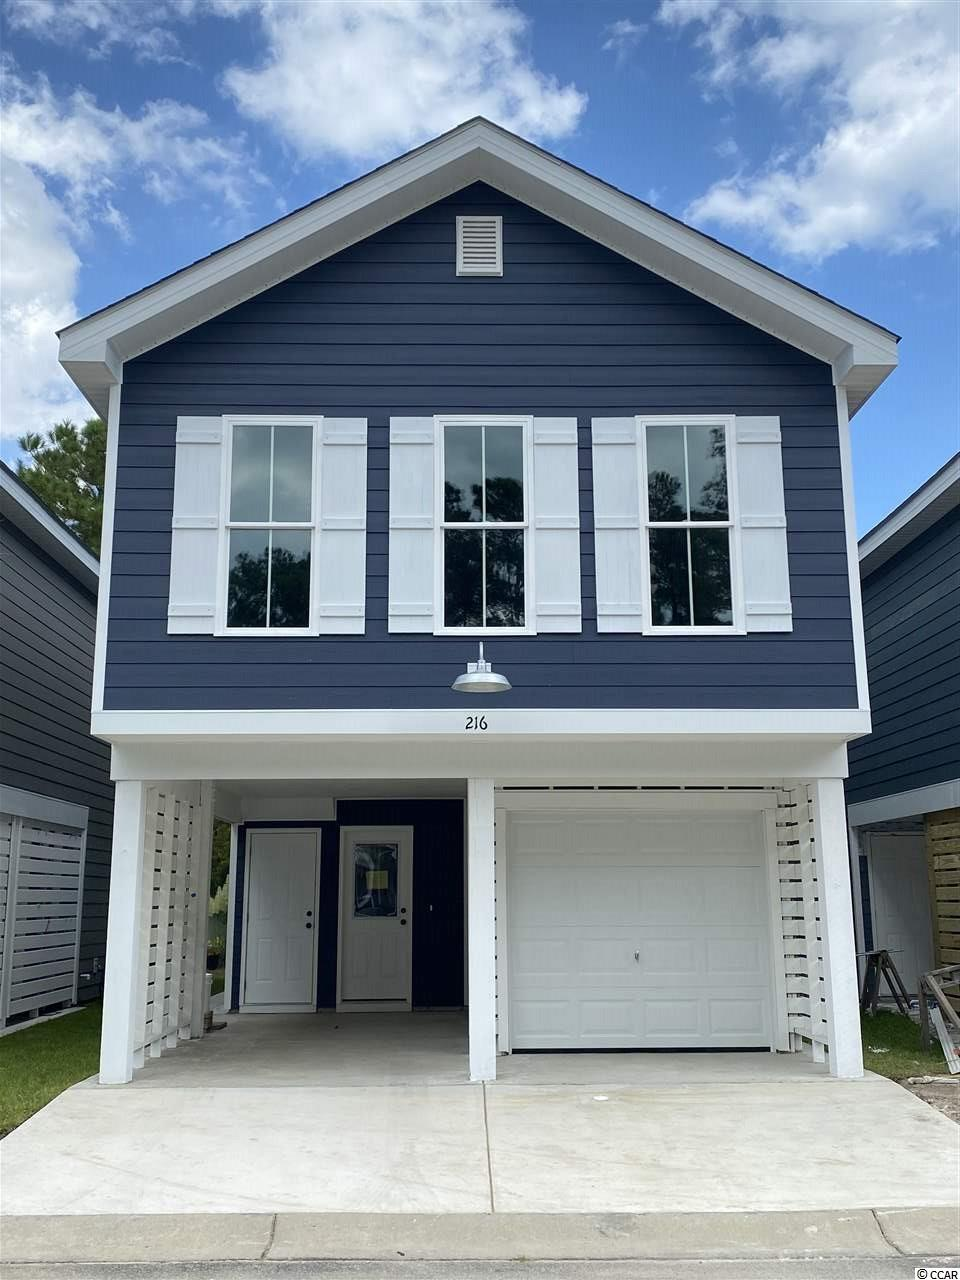 Although only one mile from the Garden City Pier with a golf cart path the entire trip, this home is nestled in a quaint 30 home community with excellent amenities such as a swimming pool and more! This home features Granite countertops in the kitchen, under-mount SS sink, GE appliance package with side by side counter depth fridge, ice maker and water dispenser. The white subway tile backsplash accentuates the quality of the kitchen! Bathrooms include Carrera Marble solid surface countertops with under-mount sinks, shiplap walls and comfort height toilet in the master. Cathedral ceilings in the master bedroom give an open and spacious feel to this home.These ceilings are extended throughout the kitchen into the living room, adding a greater sense of space. To keep the coastal cottage feeling throughout, the living room is accented with a shiplap wall. What really makes this feel authentic is the laminate flooring wall to wall; except wet areas where 18x18 modern tile adorns the floor. There are far too many upgrades to include in this description so contact your realtor or myself to schedule a showing!  Virtual Tour was done on the original model - the only difference is the updated kitchen design.